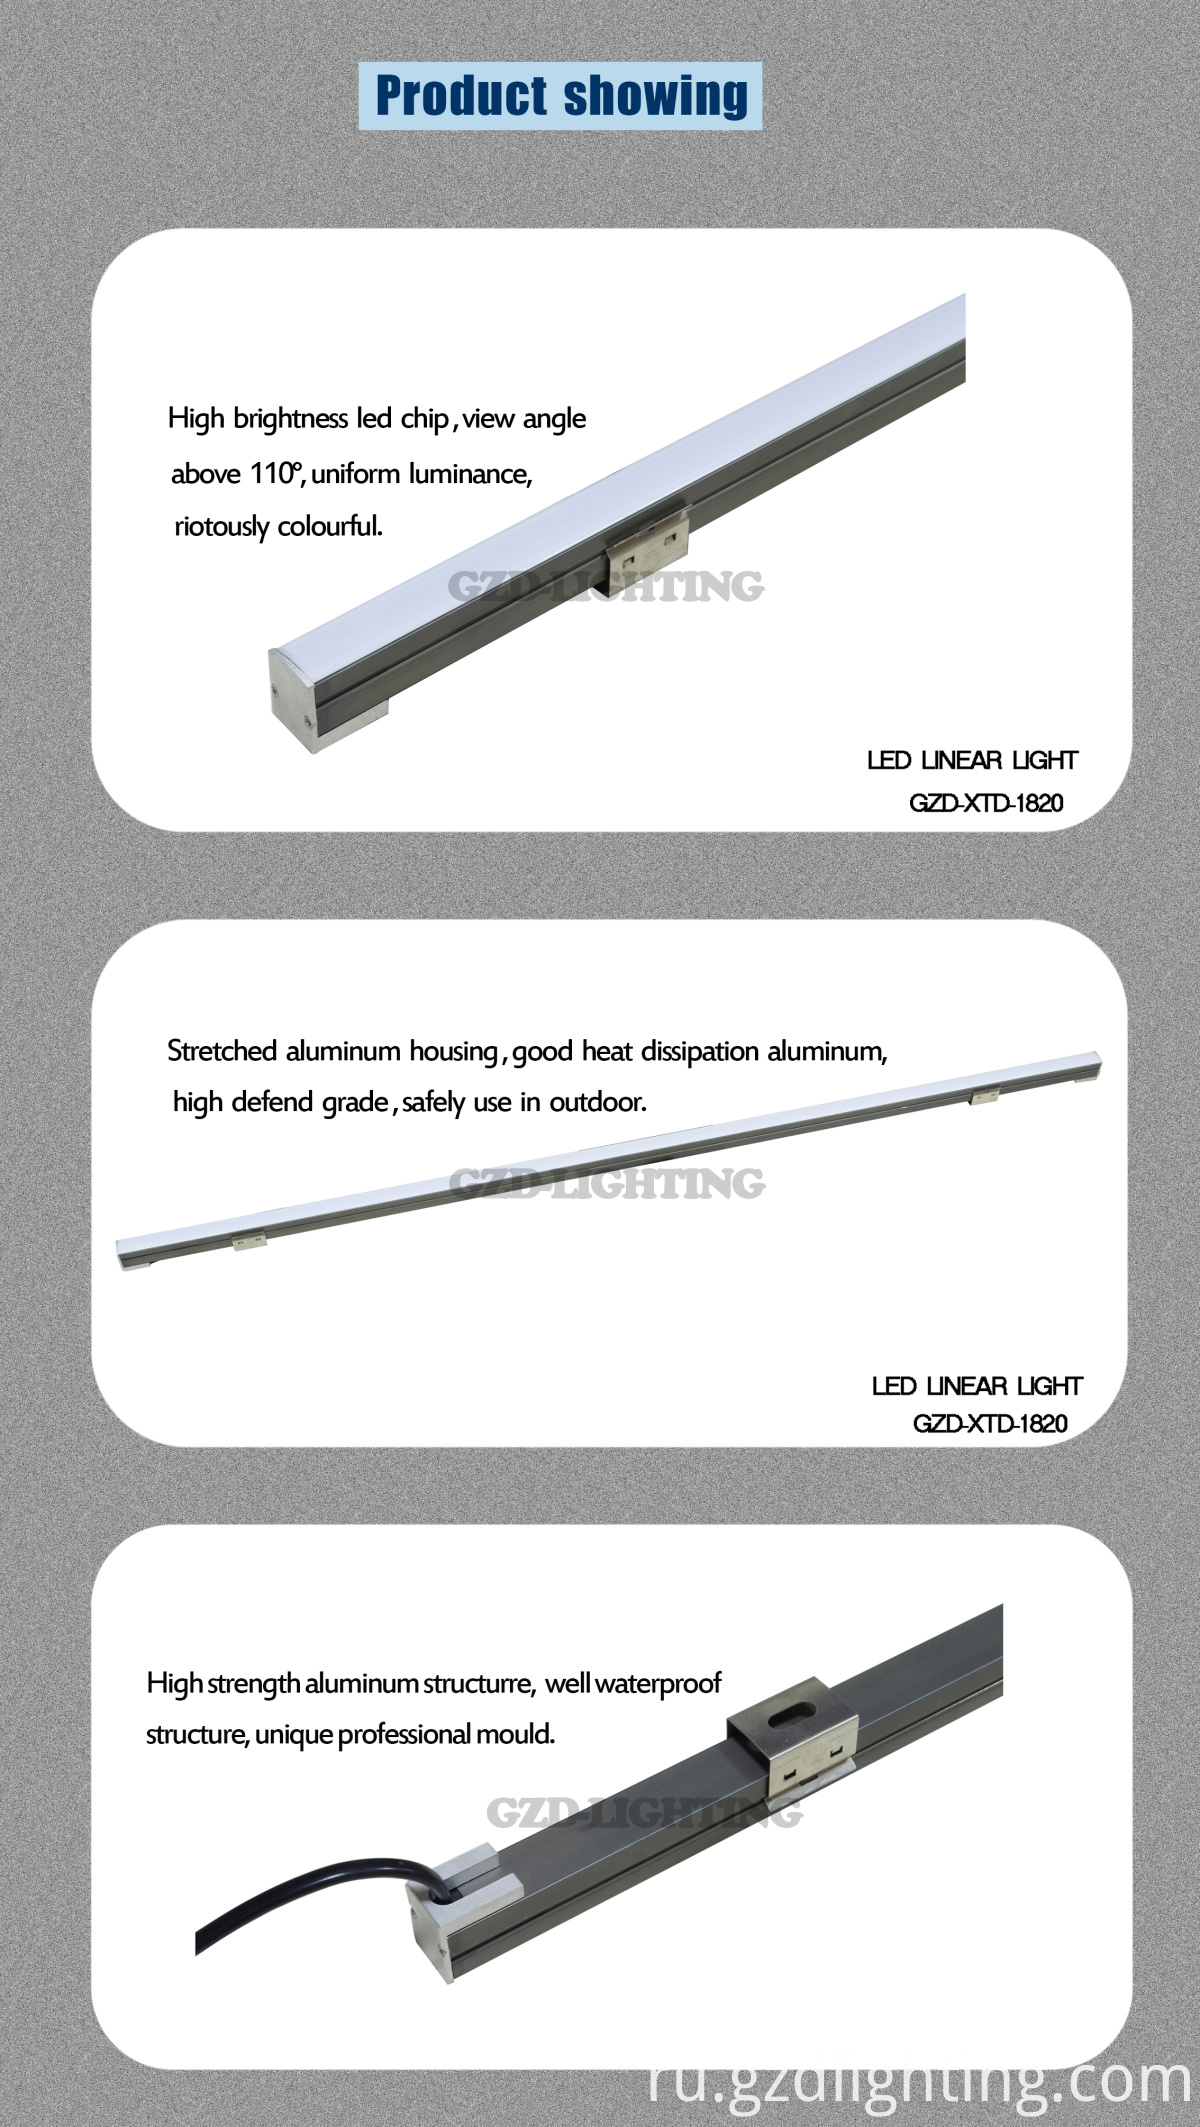 LED SLIM LINEAR LIGHT